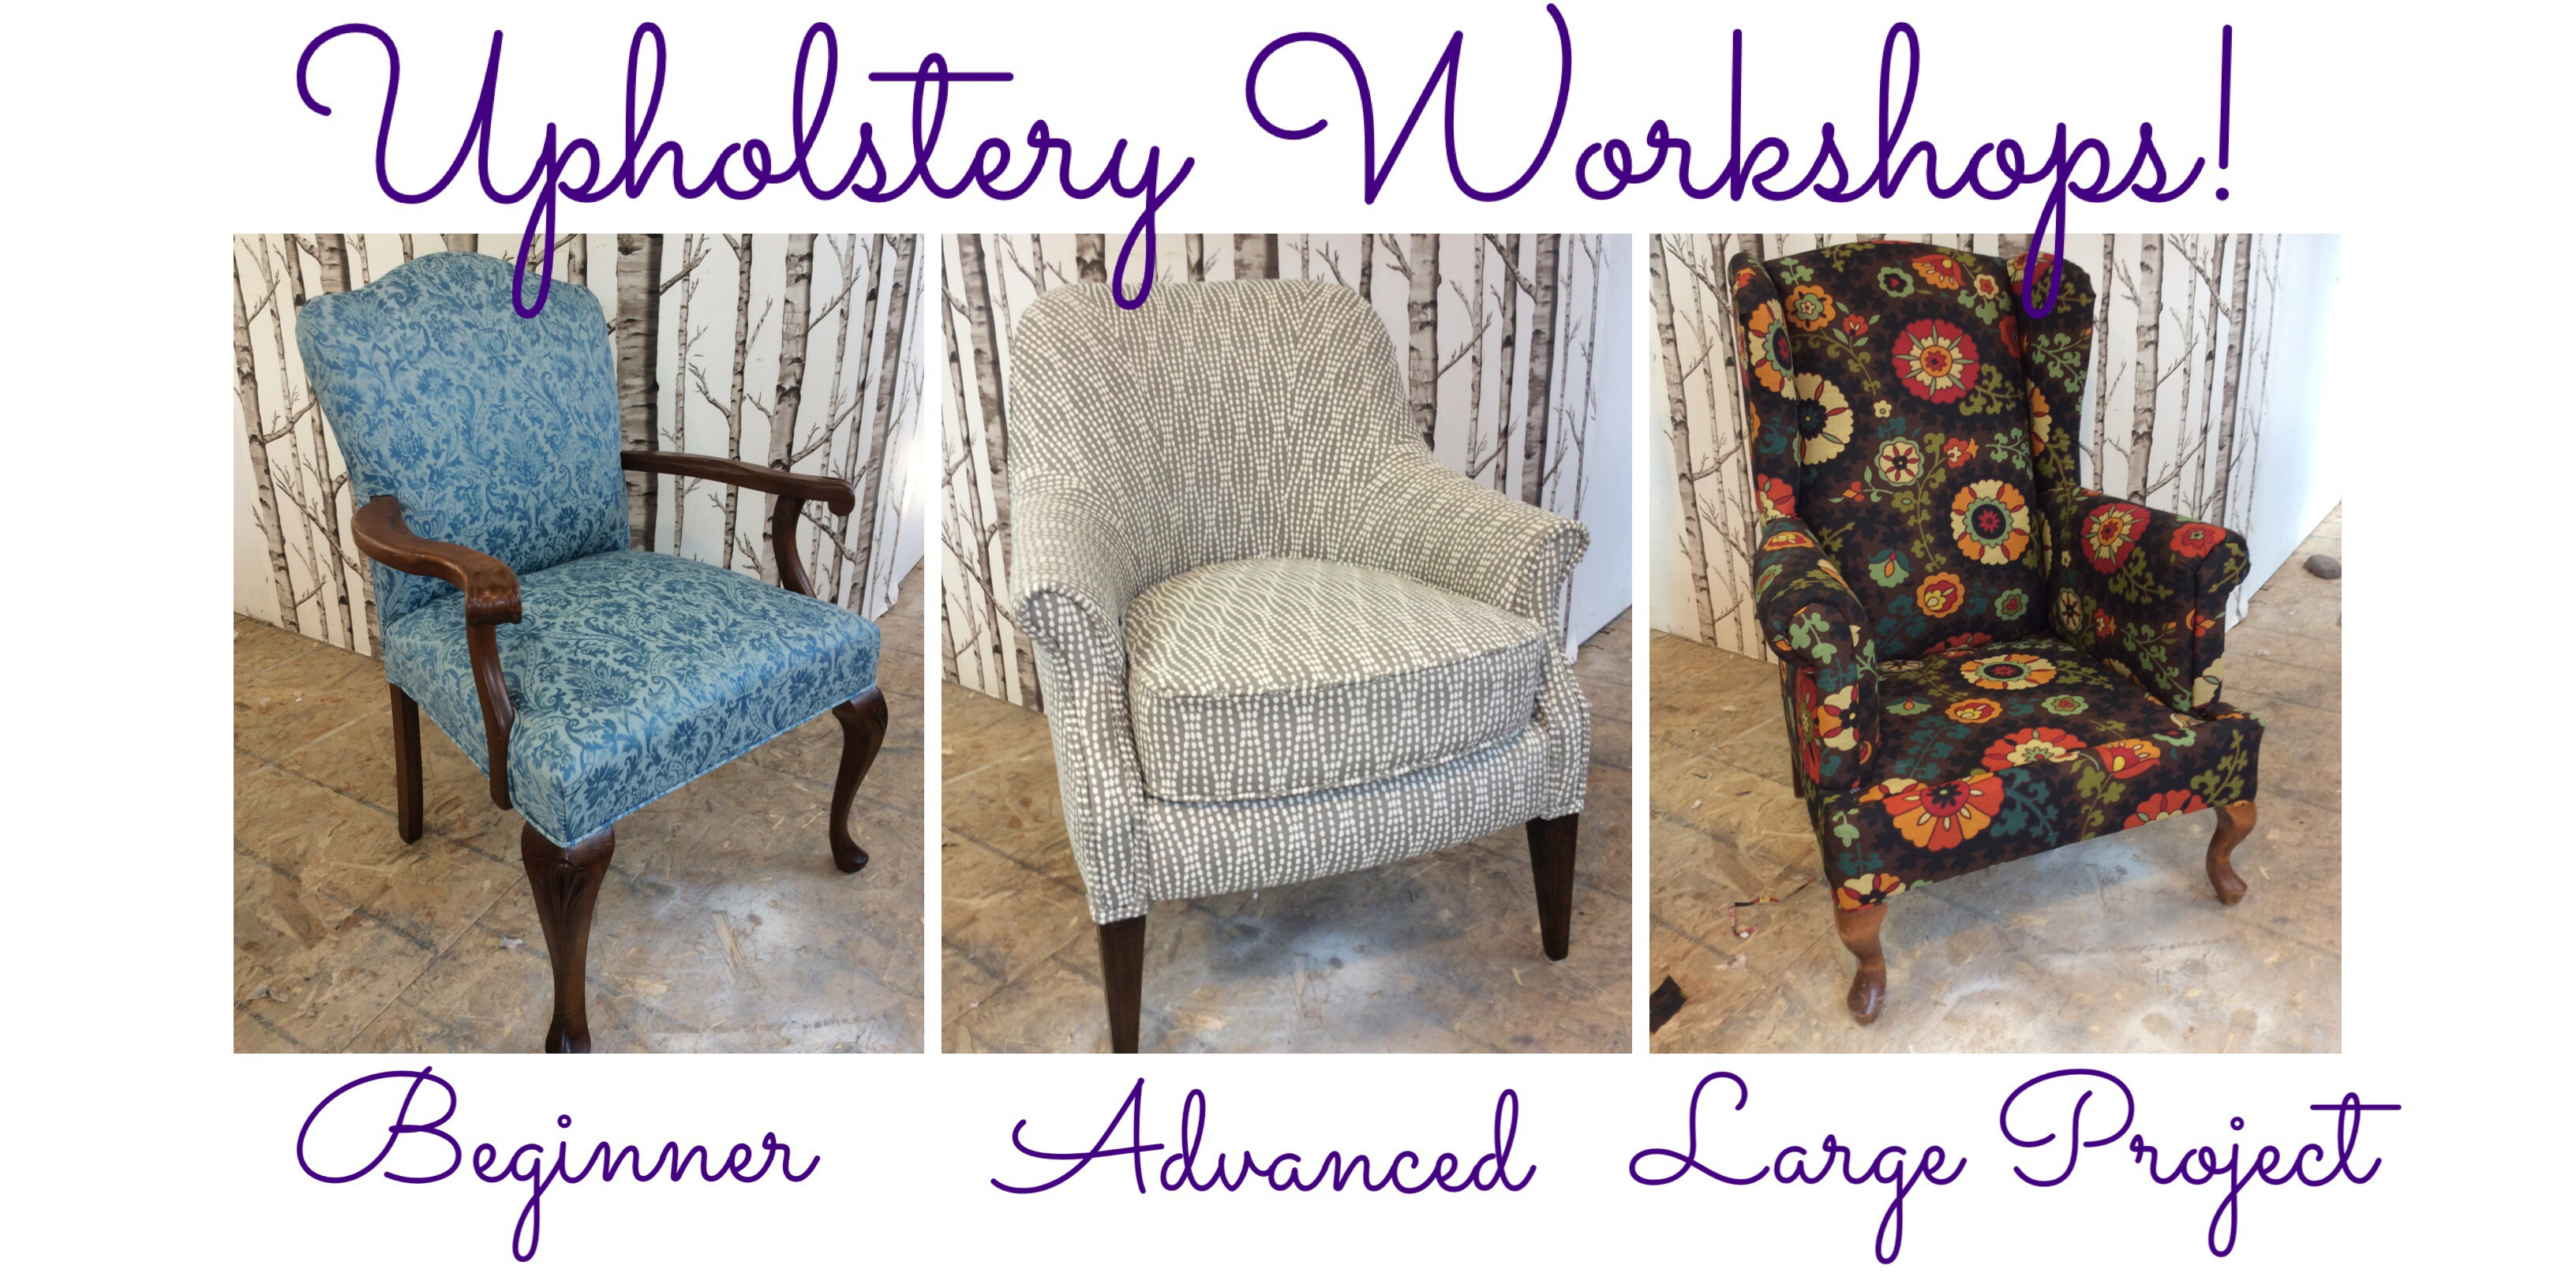 Tag Upholstery Workshops Classes Courses DIY Halifax Nova Scotia Canada